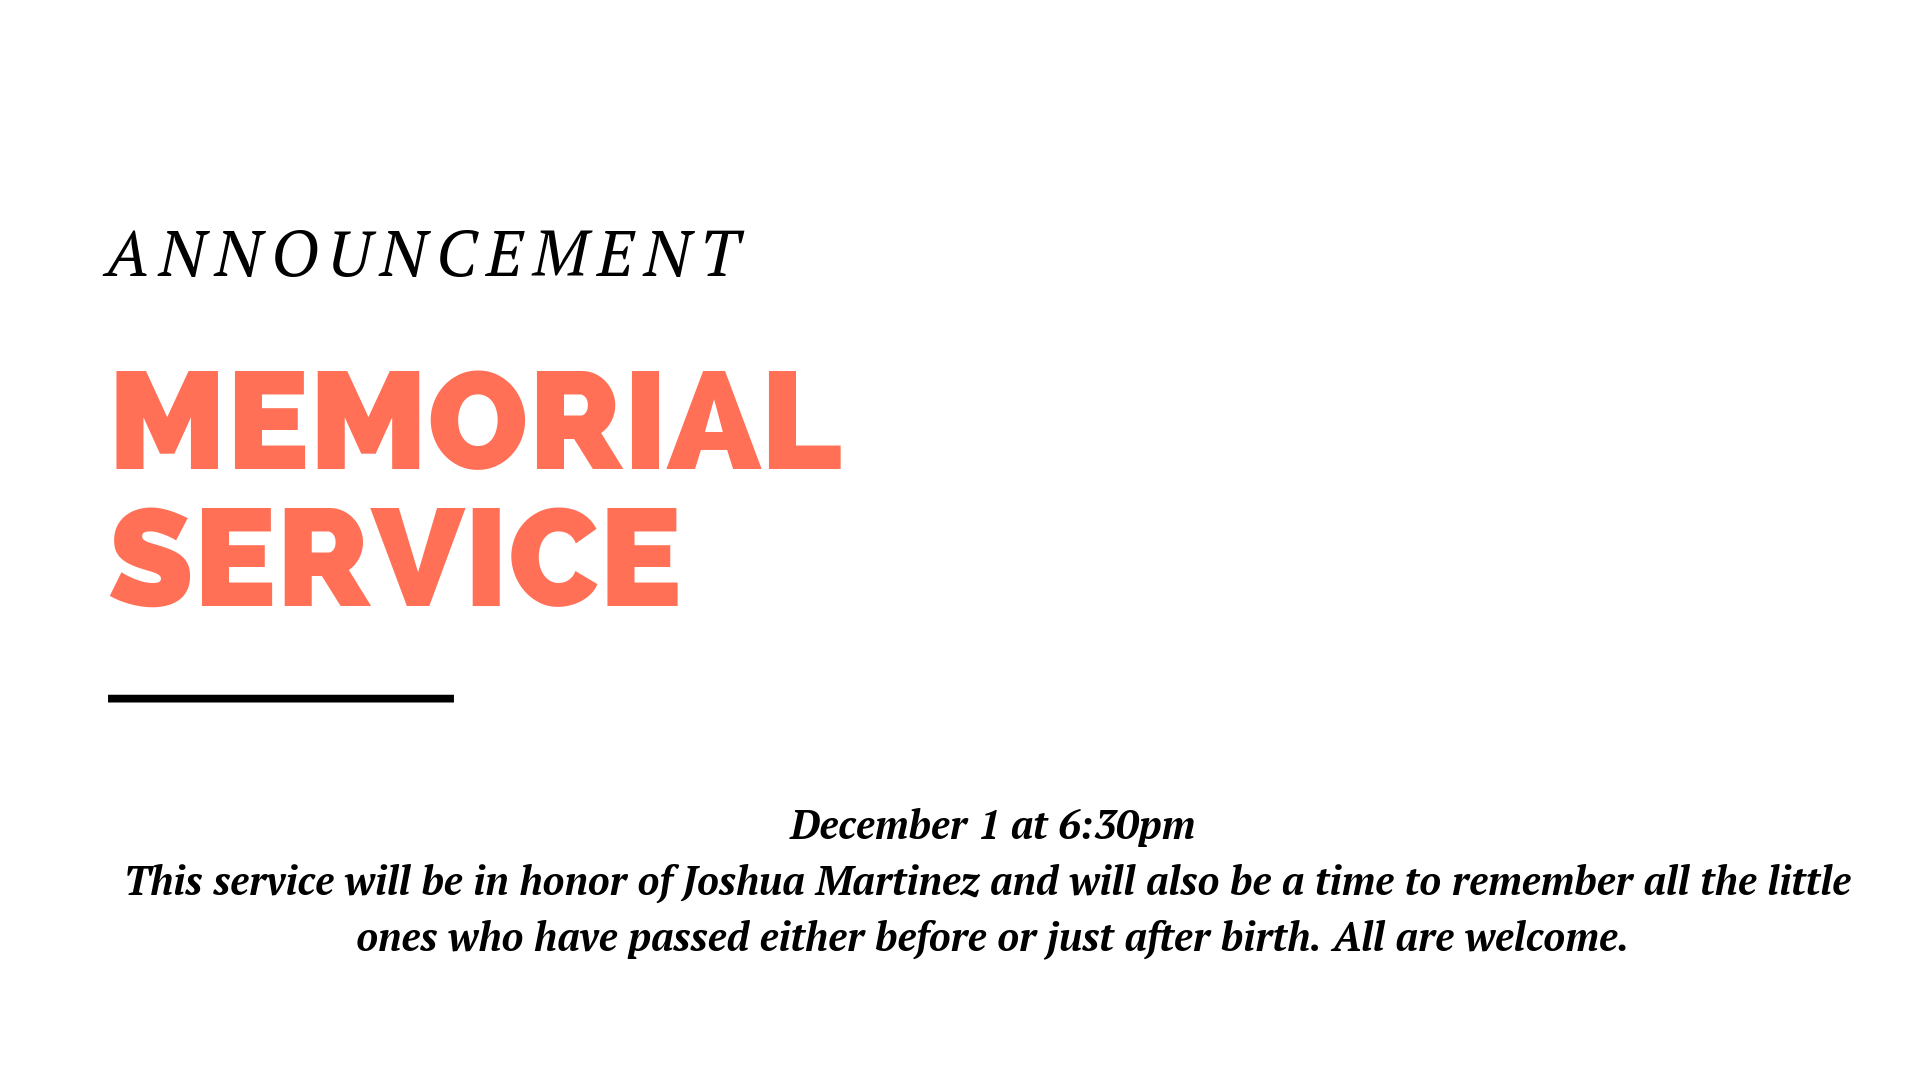 On Dec. 1 at 6:30pm, we'll be holding a memorial service at the church in honor of Joshua Martinez. The service will also be a time to remember all the little ones who have passed either before or just after birth. We want to invite everyone to come participate in this important night.